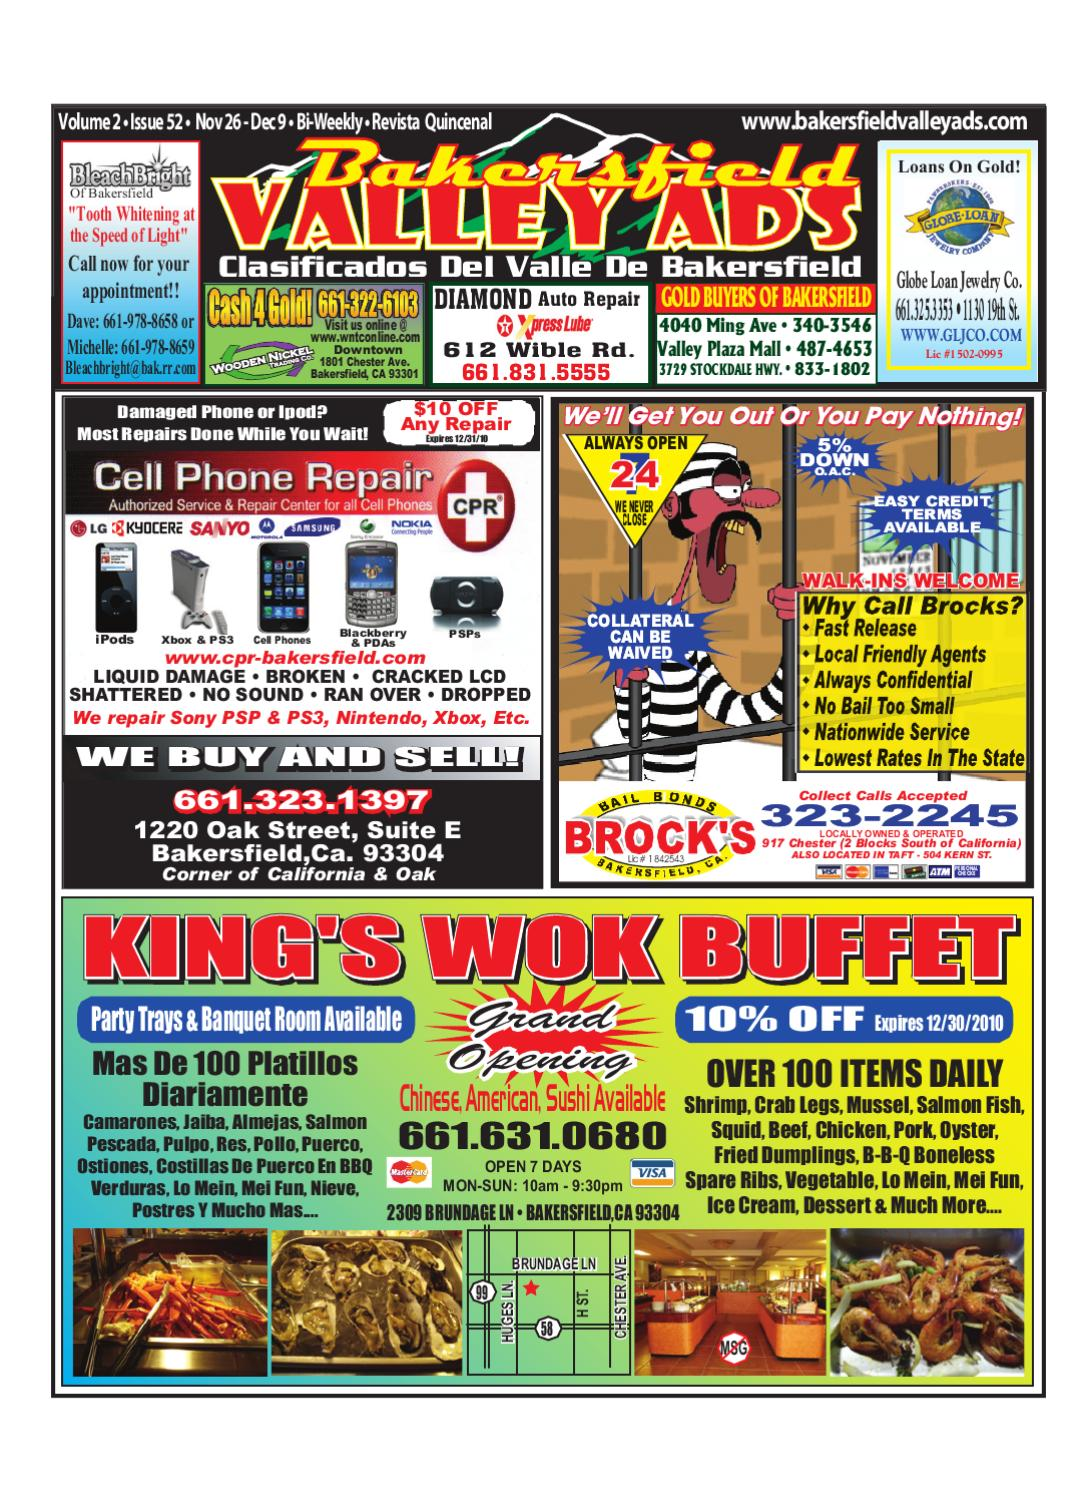 Bakersfield valley ads by bakersfield valley ads issuu 1betcityfo Image collections